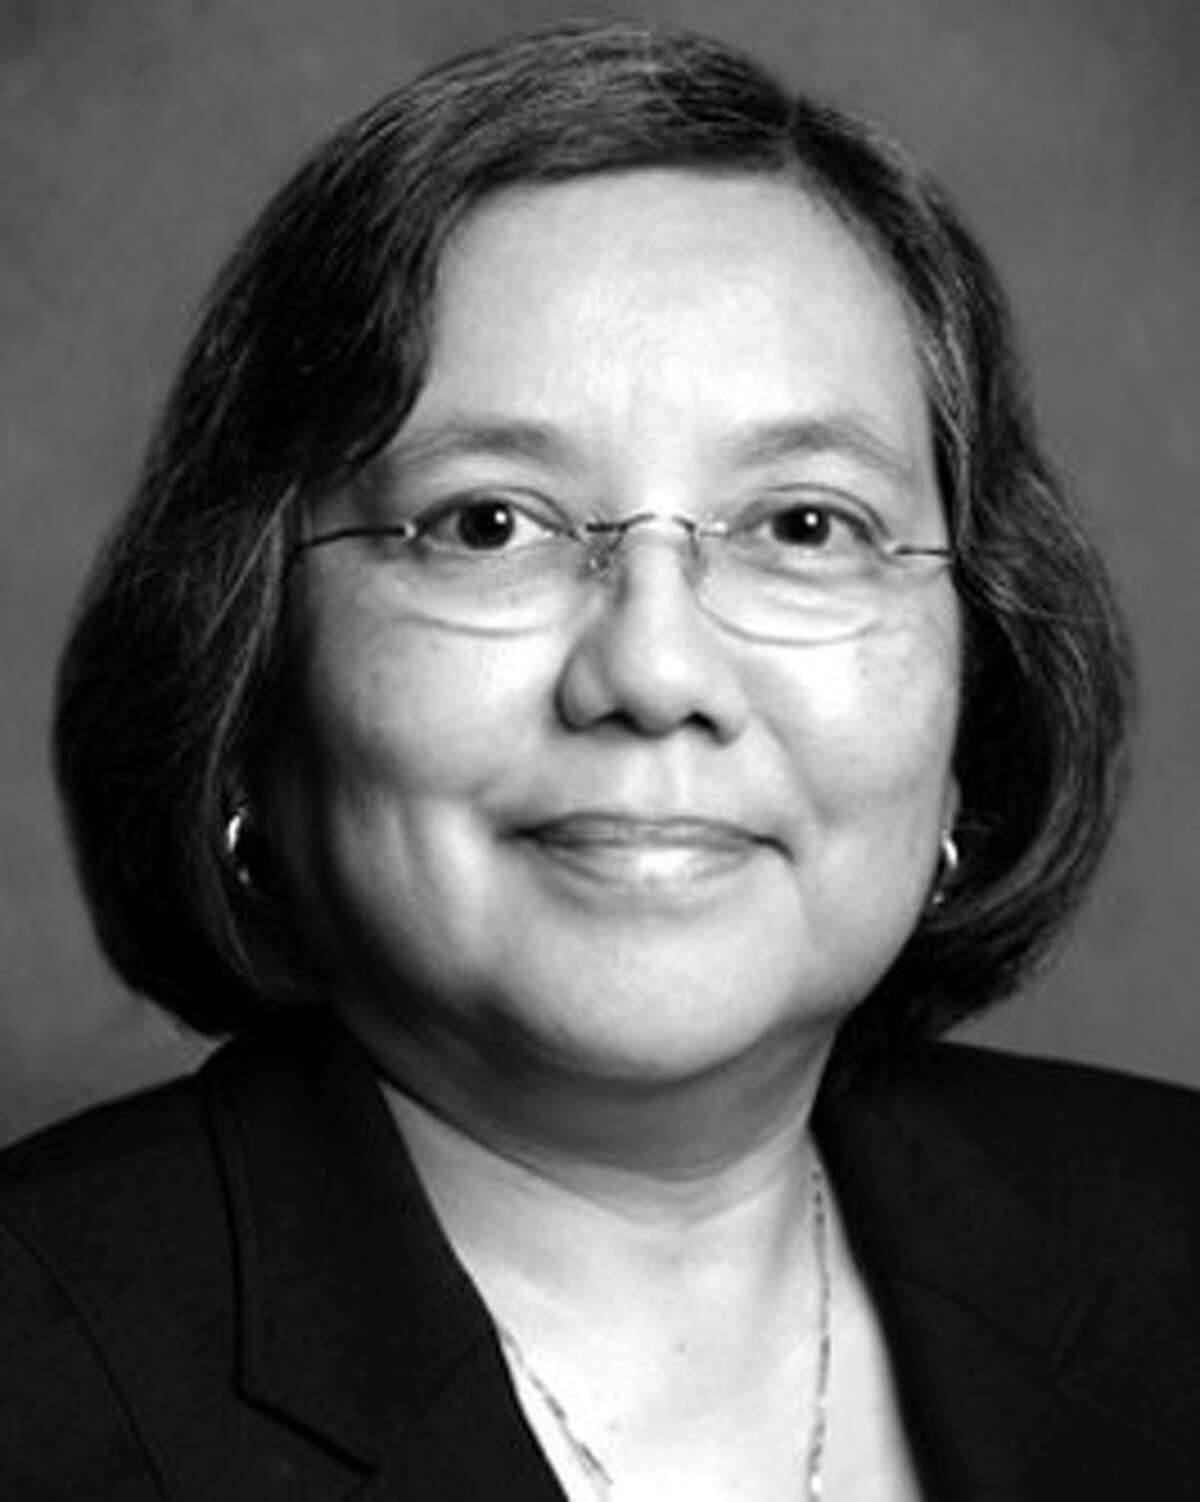 Elizabeth Torres, M.D., a board-certified internist and fellow of the American College of Physicians, will be installed as the 2012 president of the Houston Academy of Medicine. (Photo submitted)